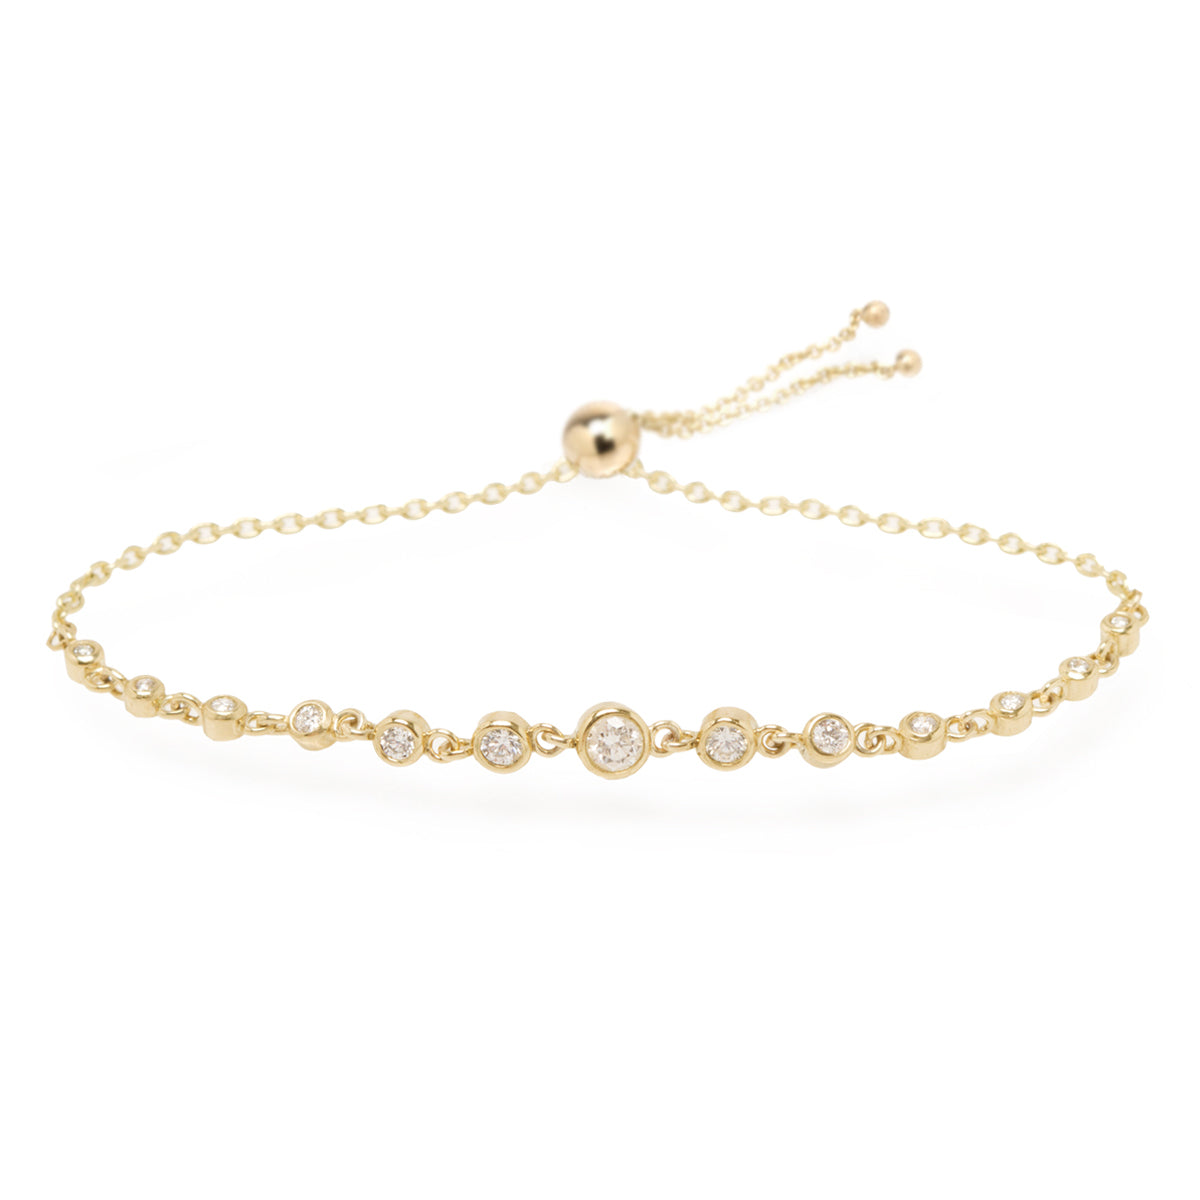 14k linked graduated diamond tennis bolo bracelet